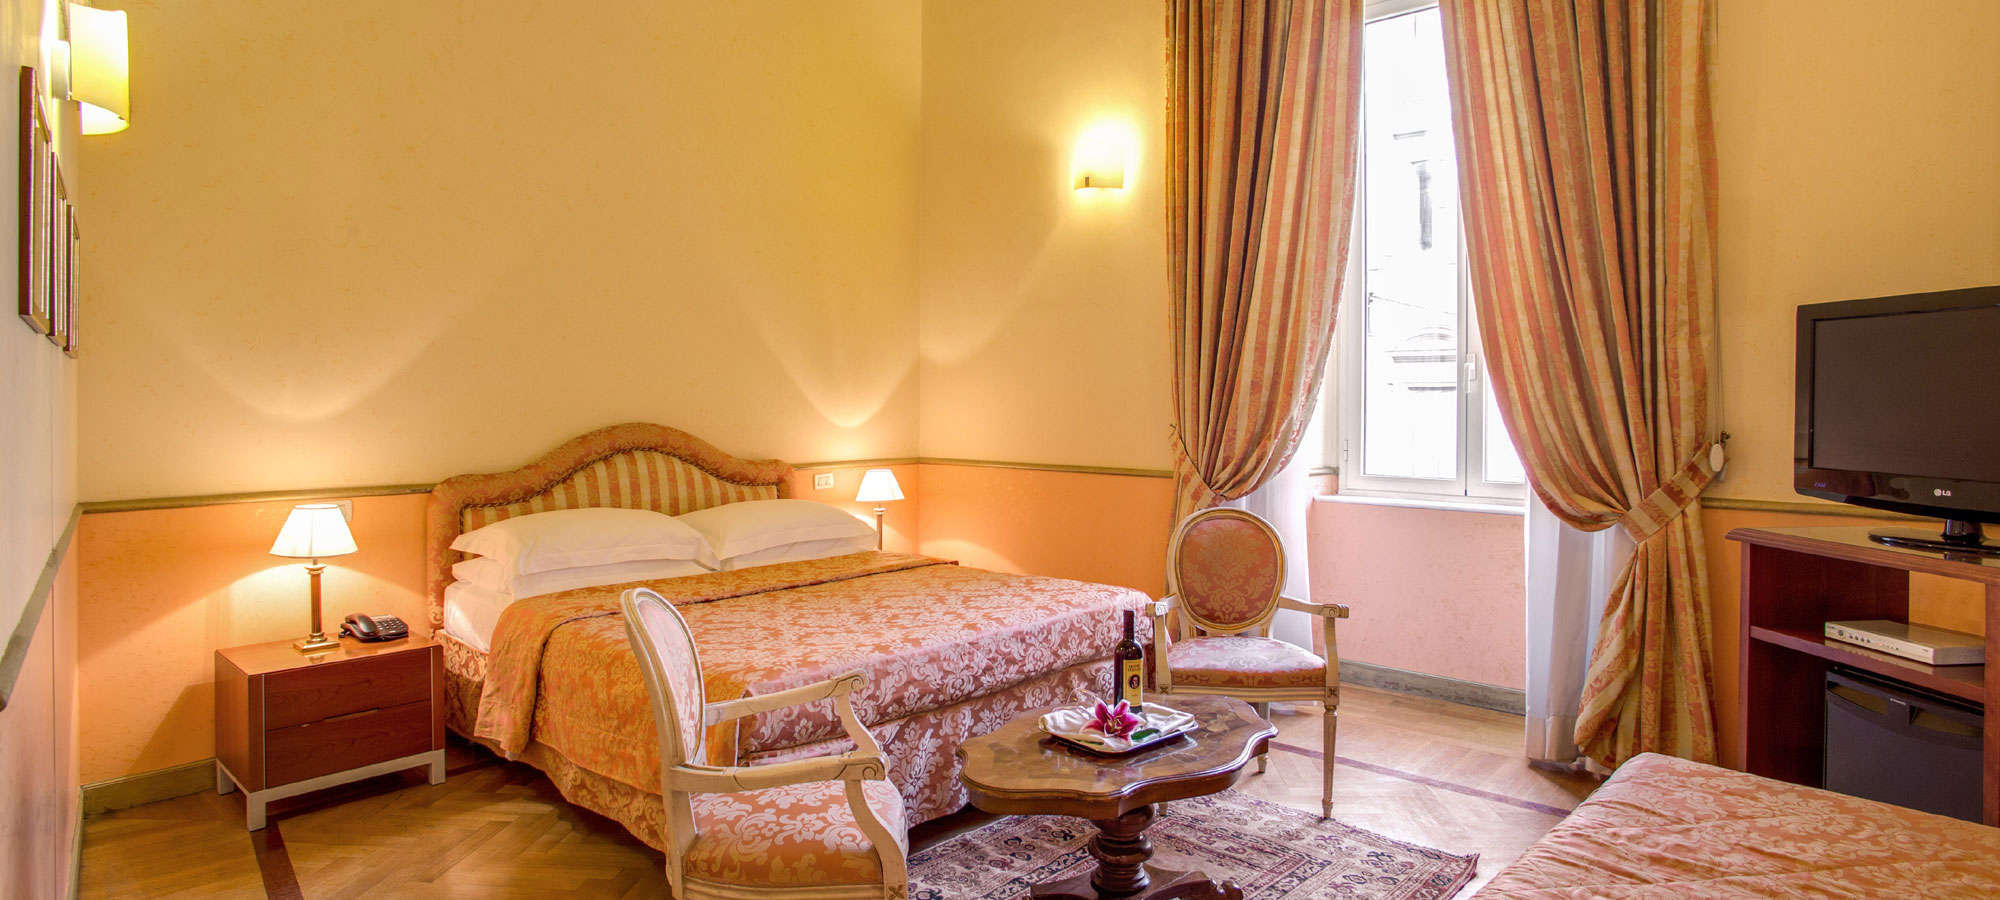 Hotel Tiziano Rome - Rooms